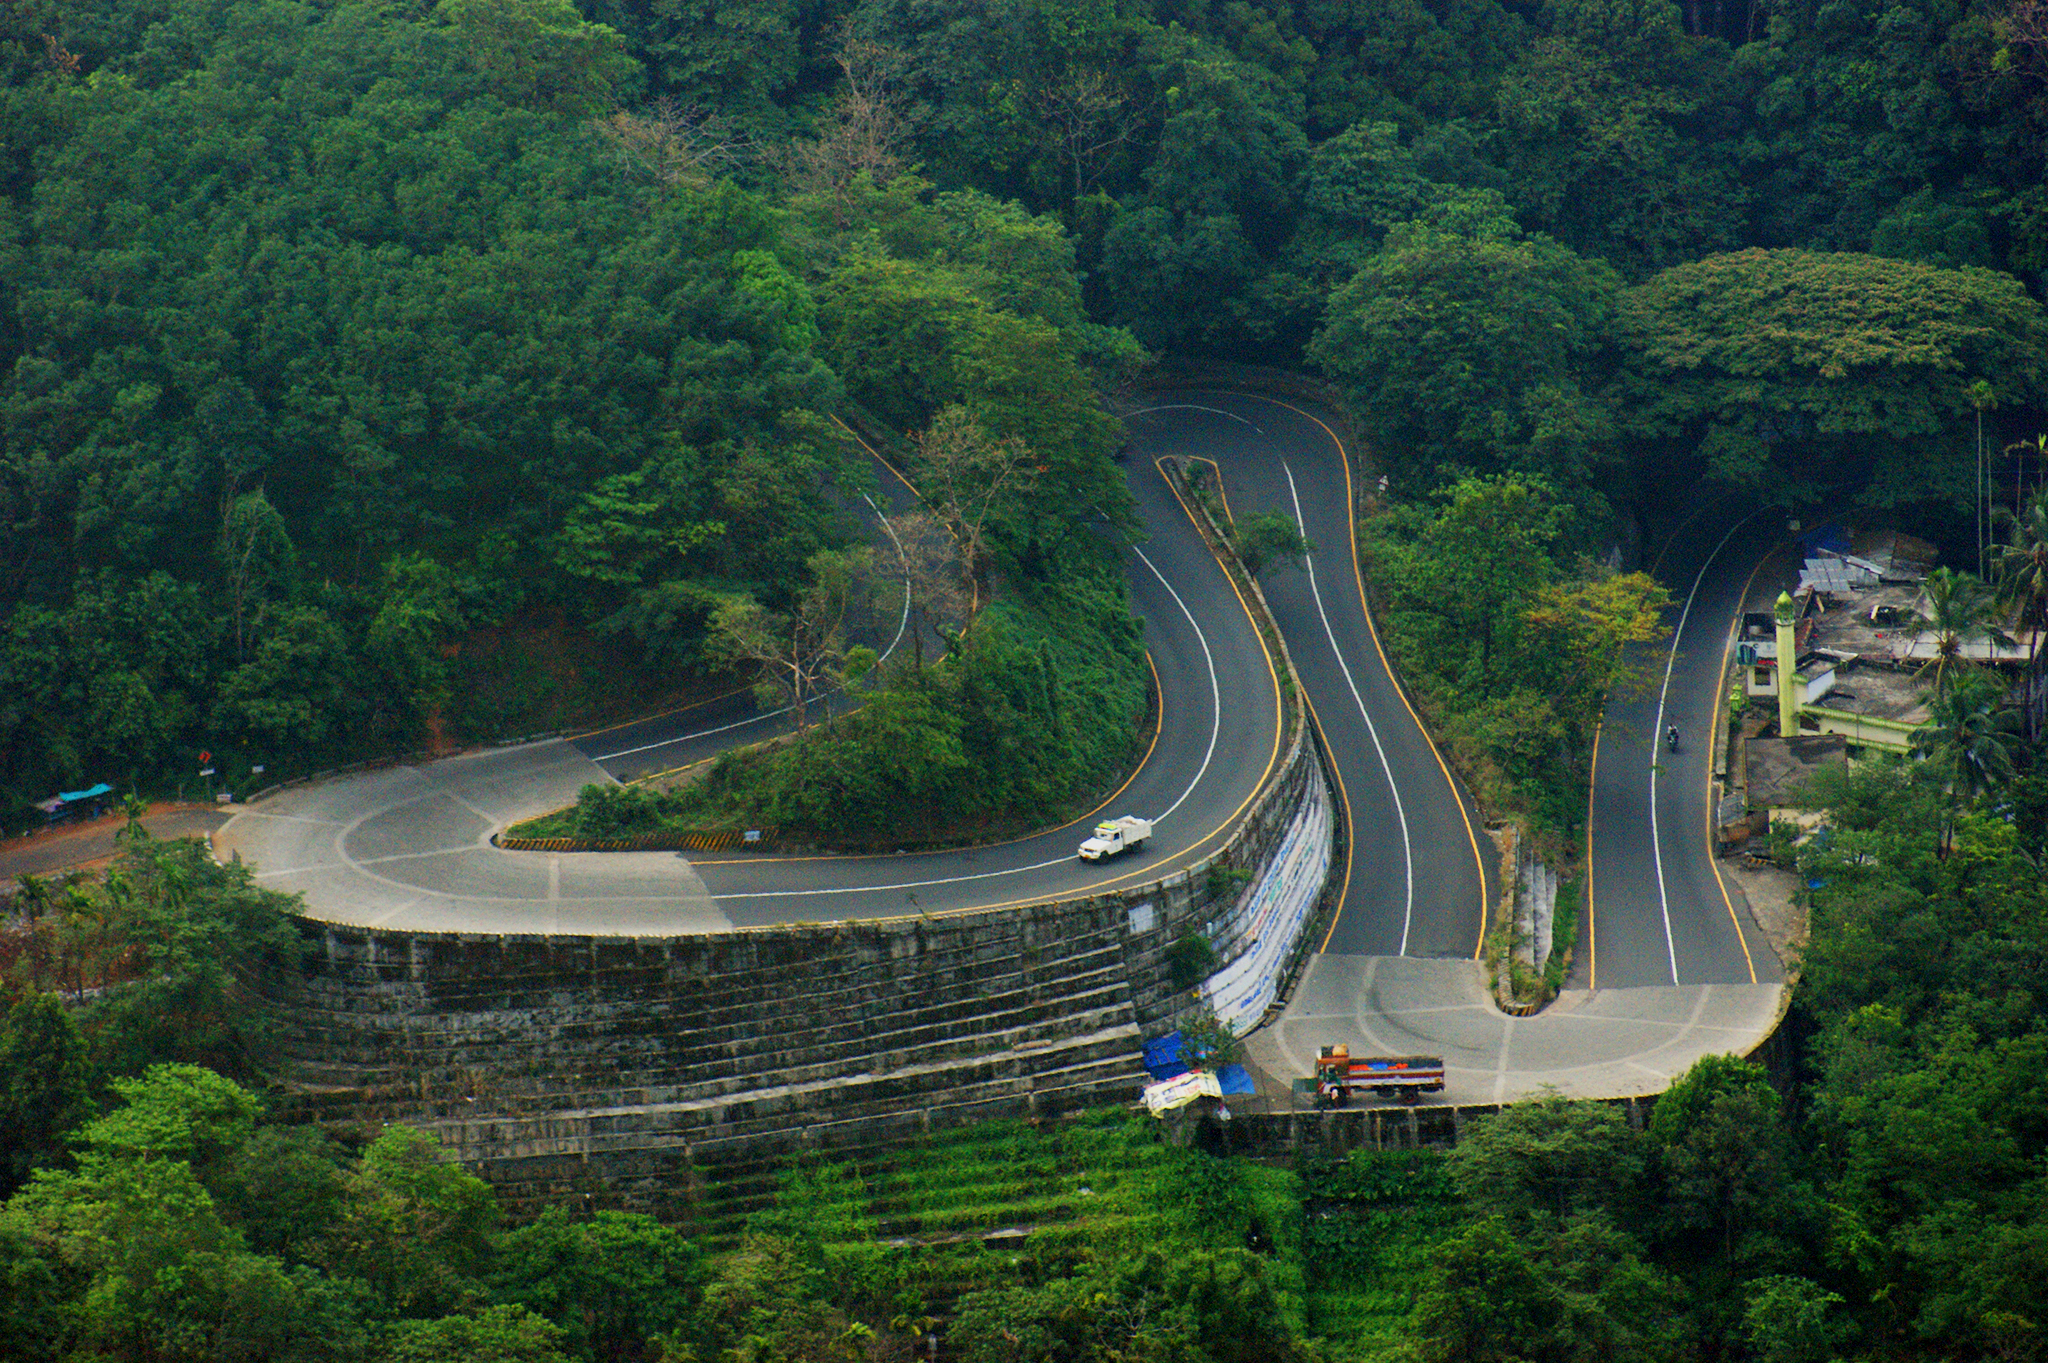 wayanad-places-to-visit-near-bangalore_image